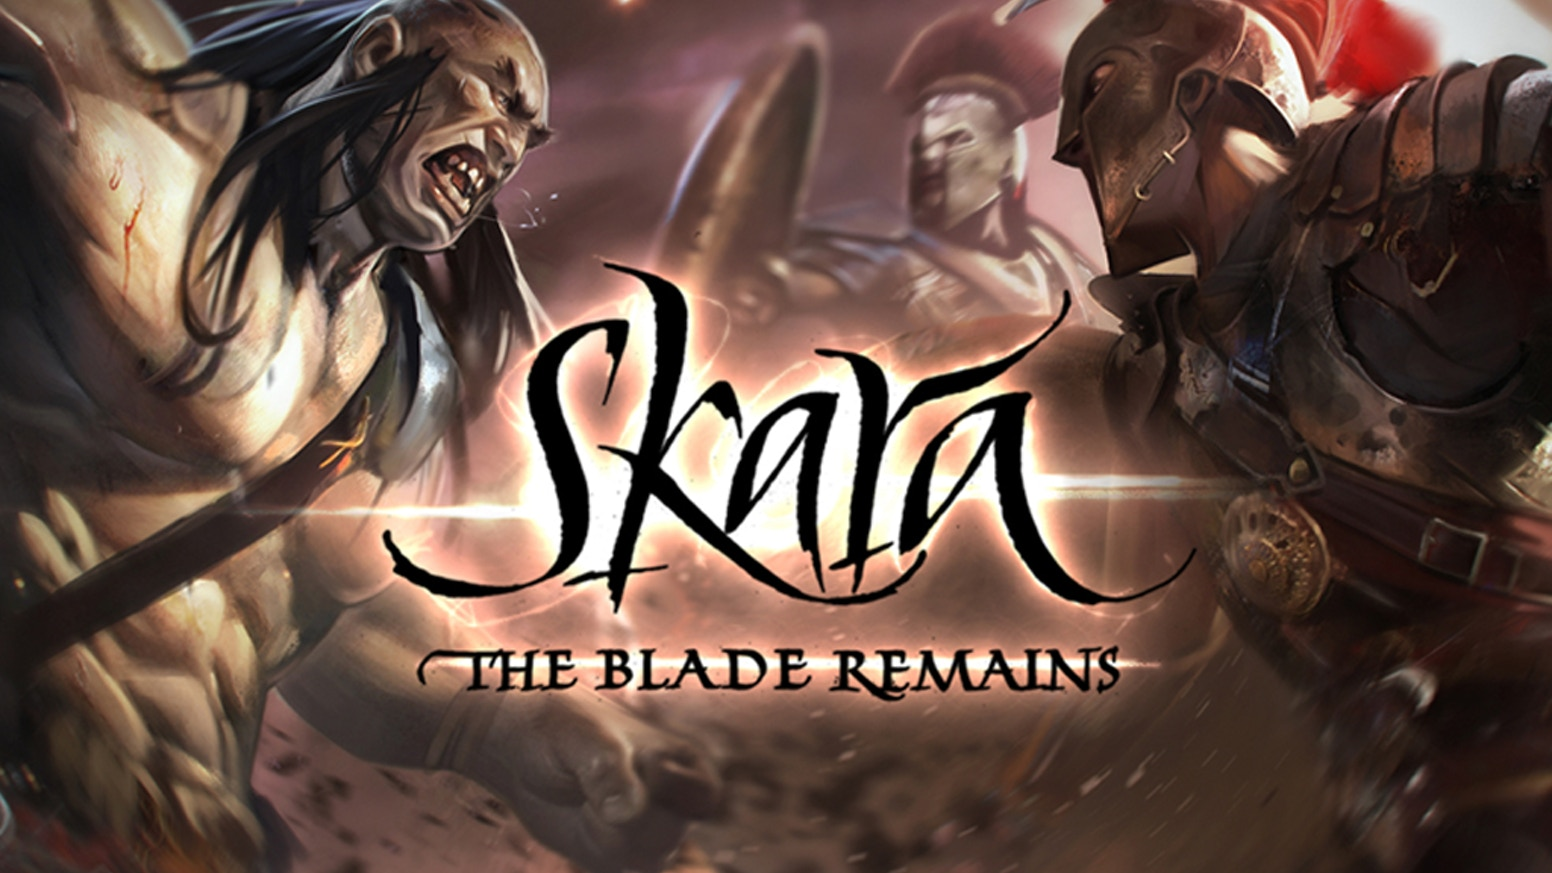 Developed with Unreal 4, Skara brings versus fighting to the online multiplayer scene, where up to 16 at a time compete to dominate a world wracked by cosmic destruction.